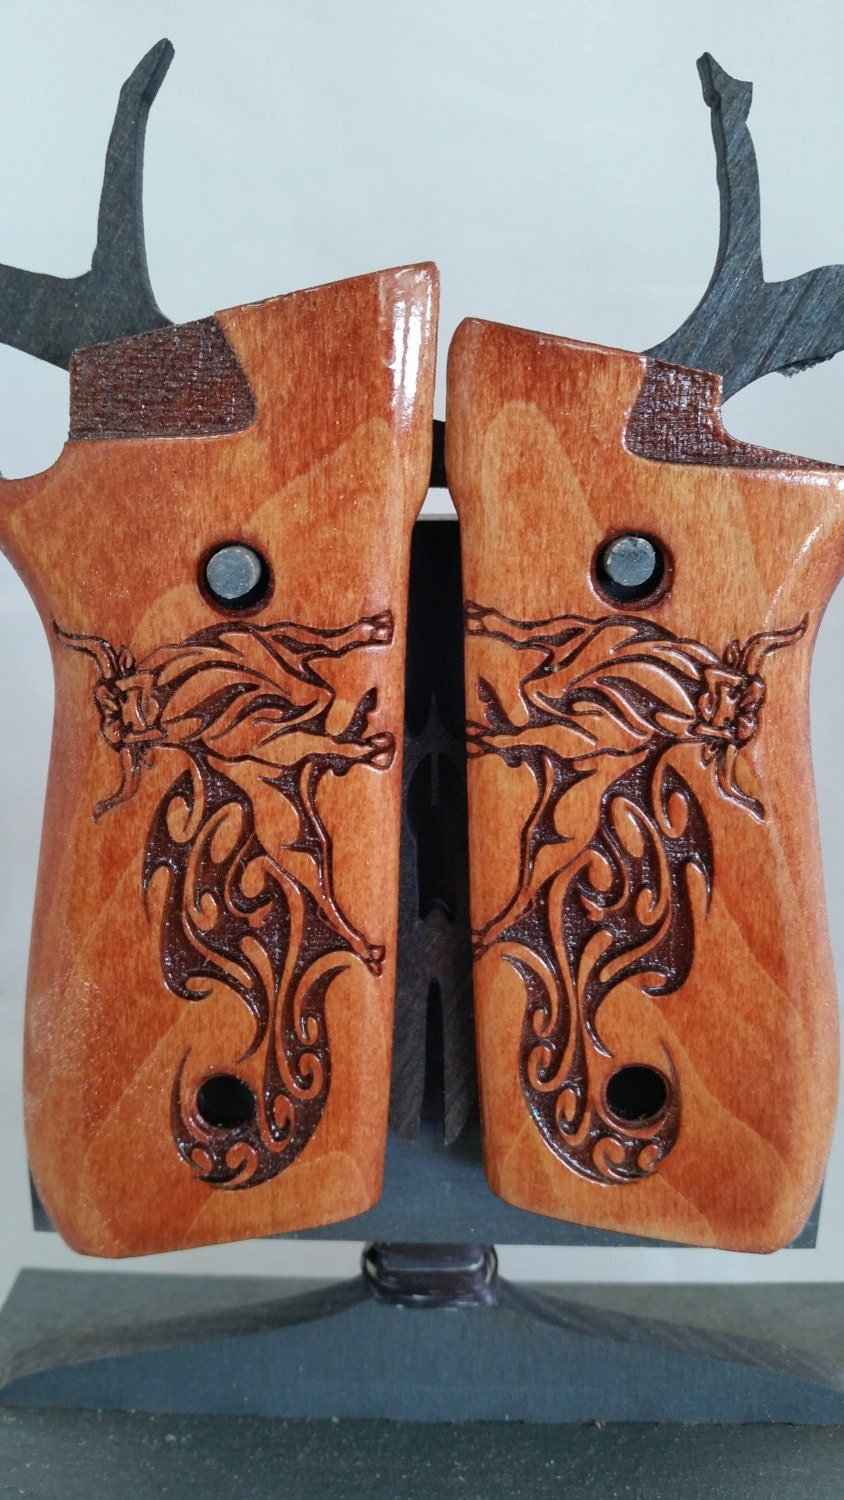 Taurus PT92 with Decock Grips with Raging Tribal Taurus